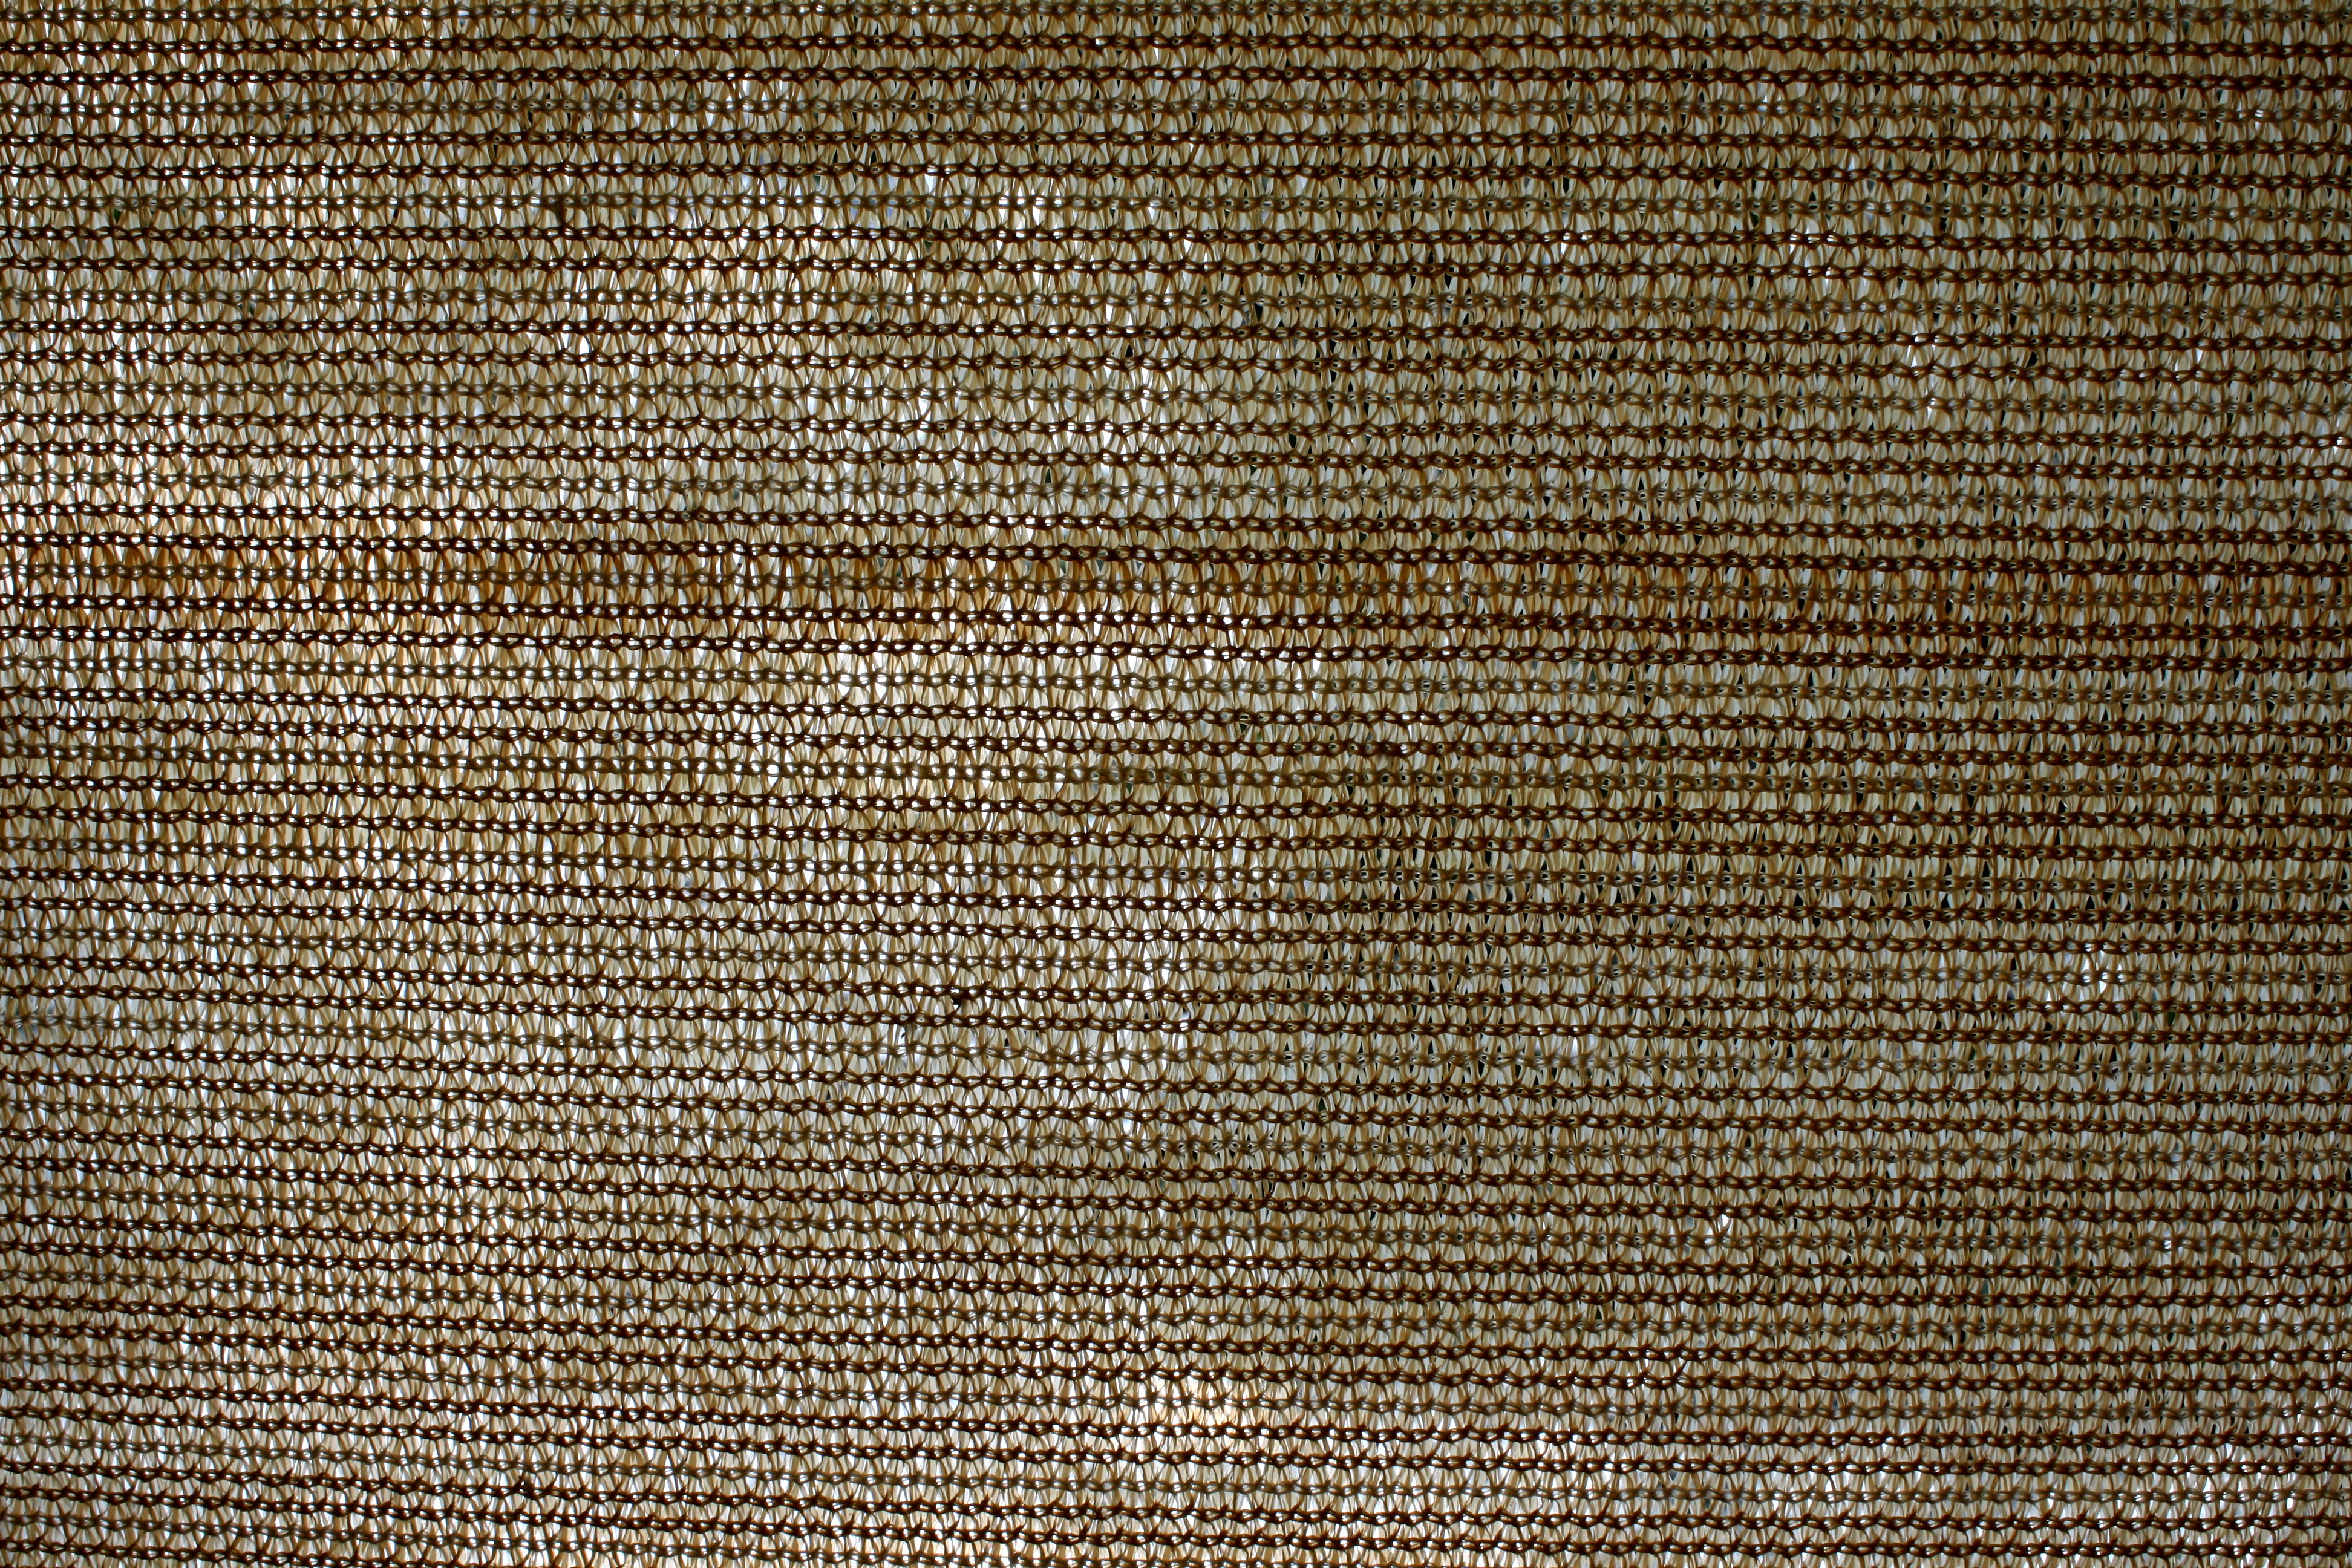 Shade Cloth Fabric Texture Picture Free Photograph